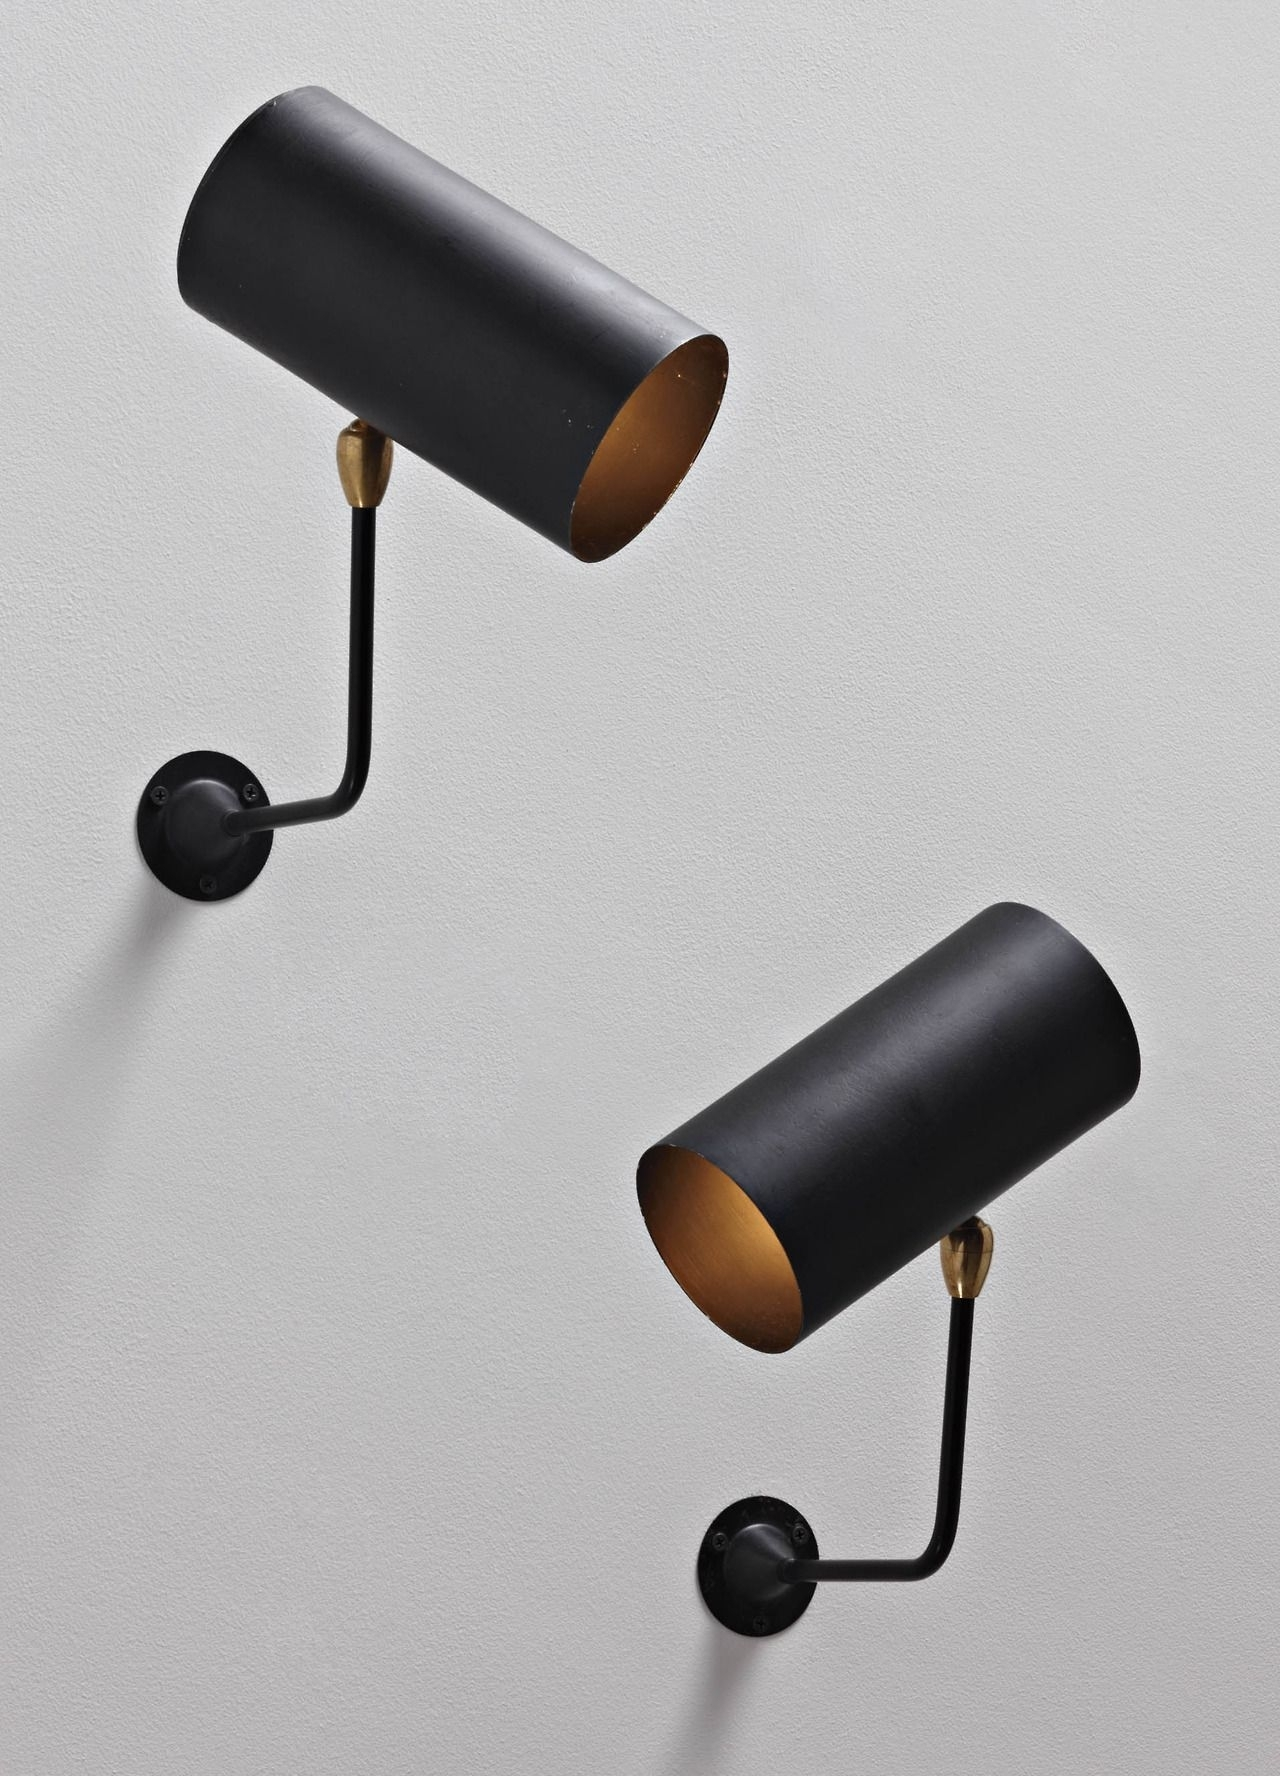 Bedside Wall Lamps For Reading Ideas On Foter